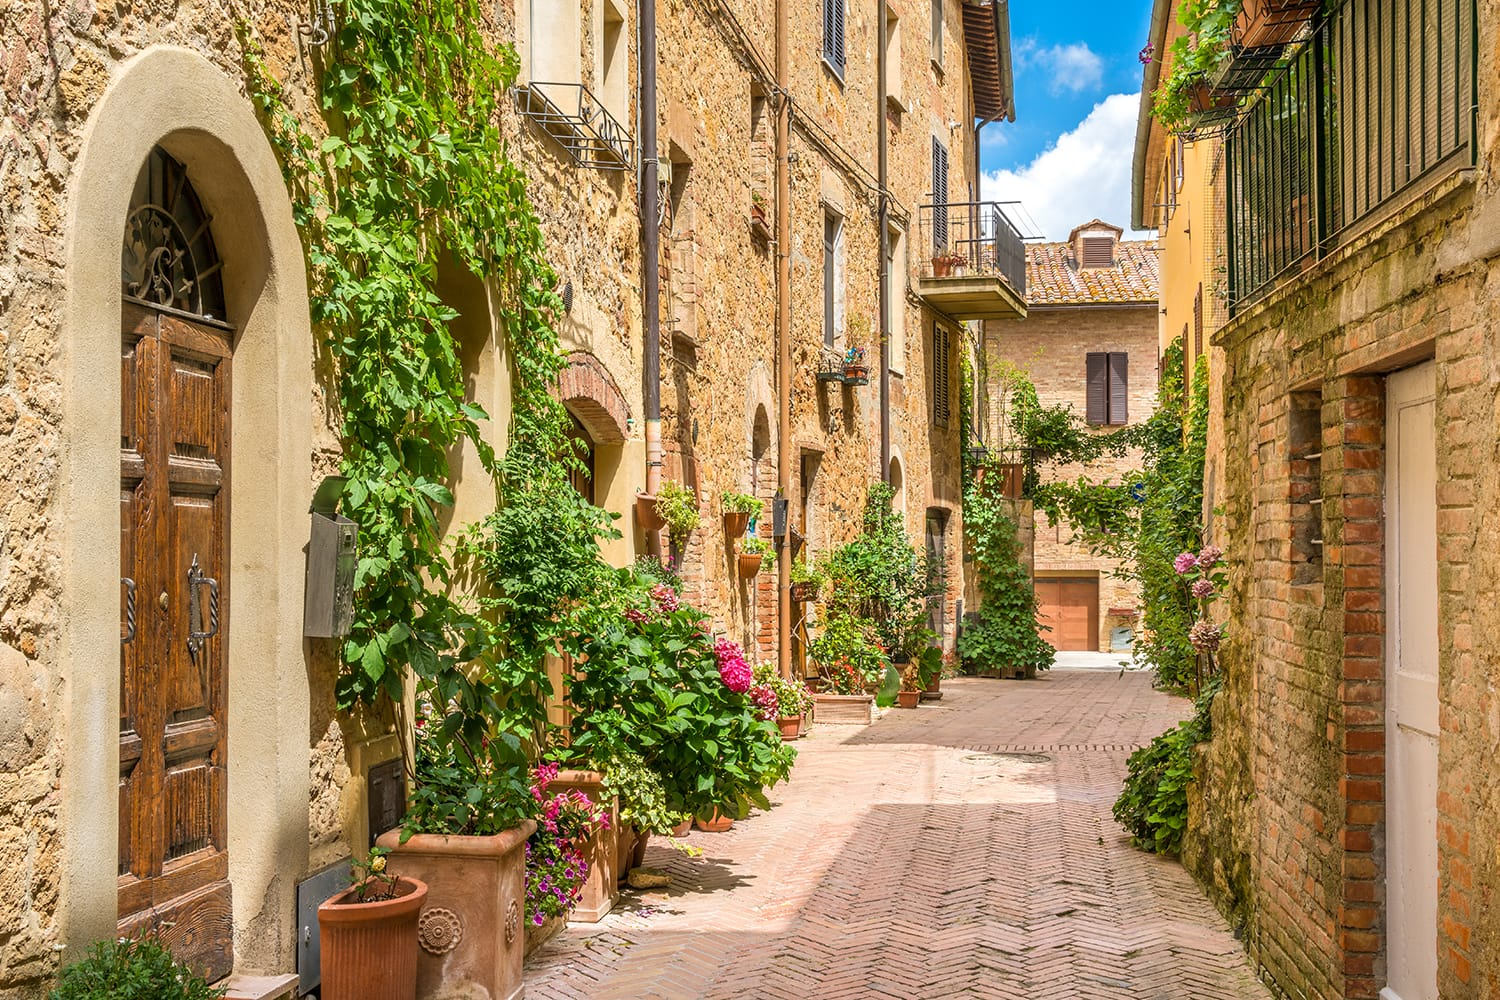 Old streets in Pienza, Italy